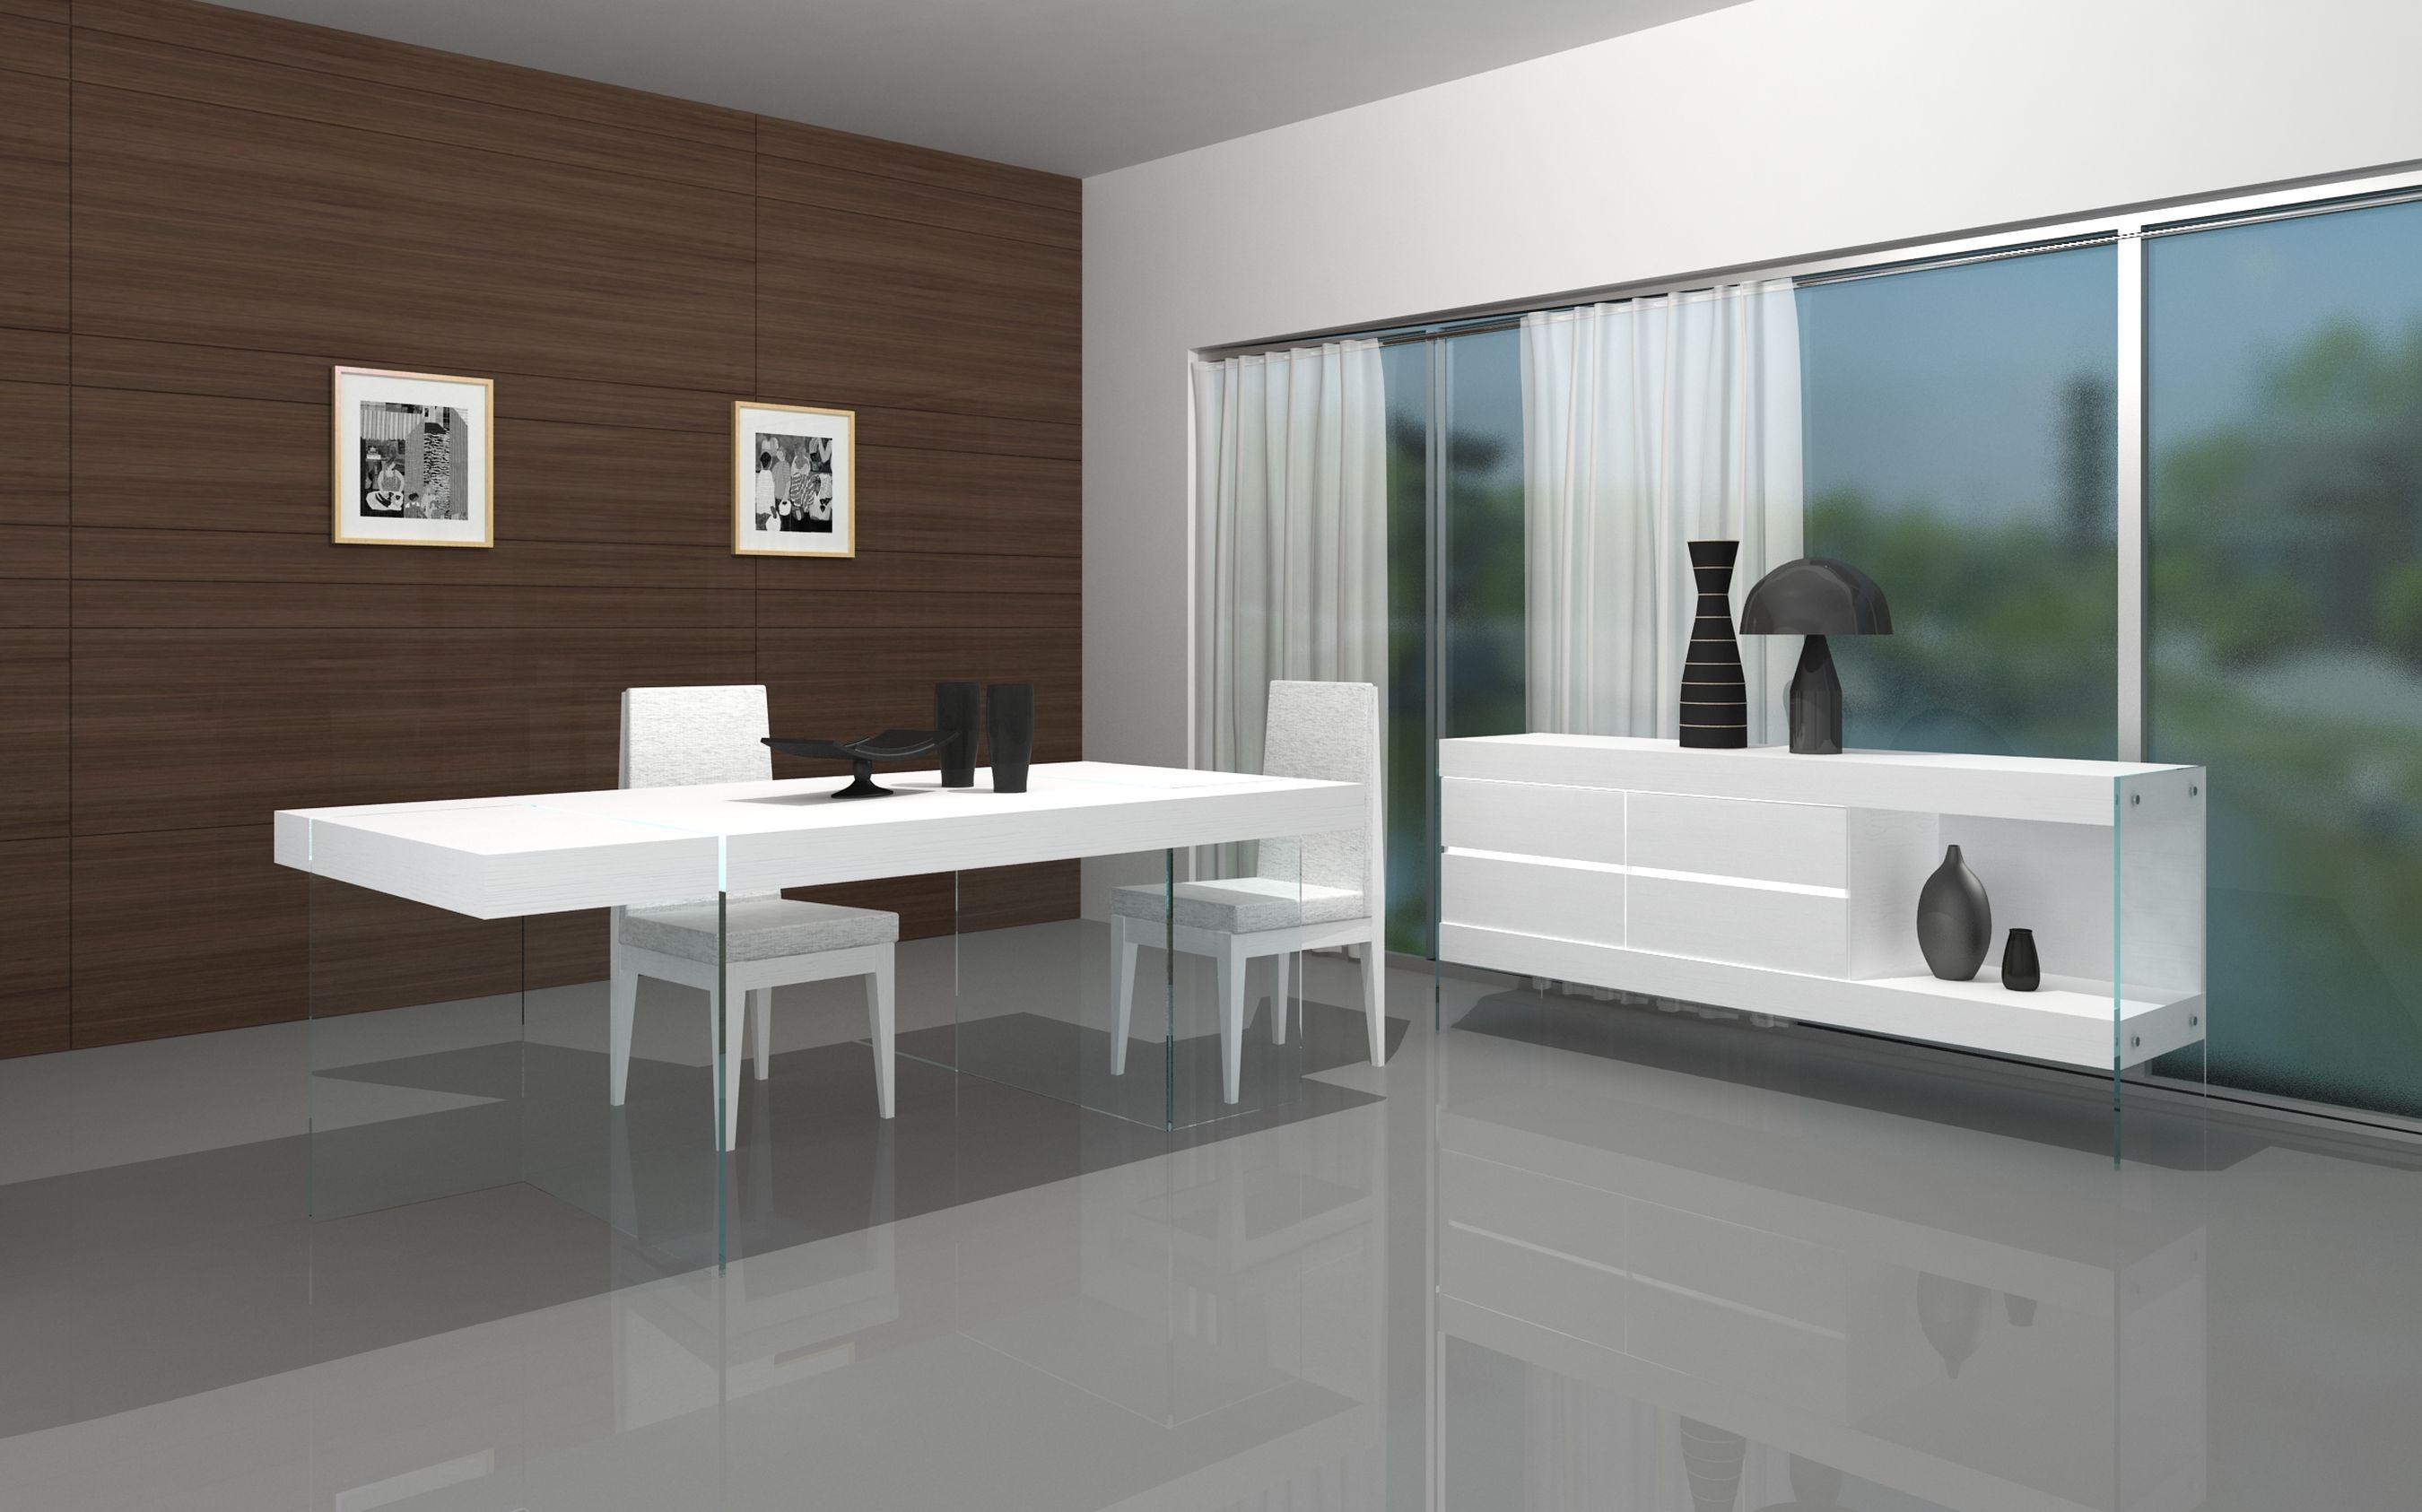 White Modern Dining Table With Glass Base Chairs And Server In Beautiful Room